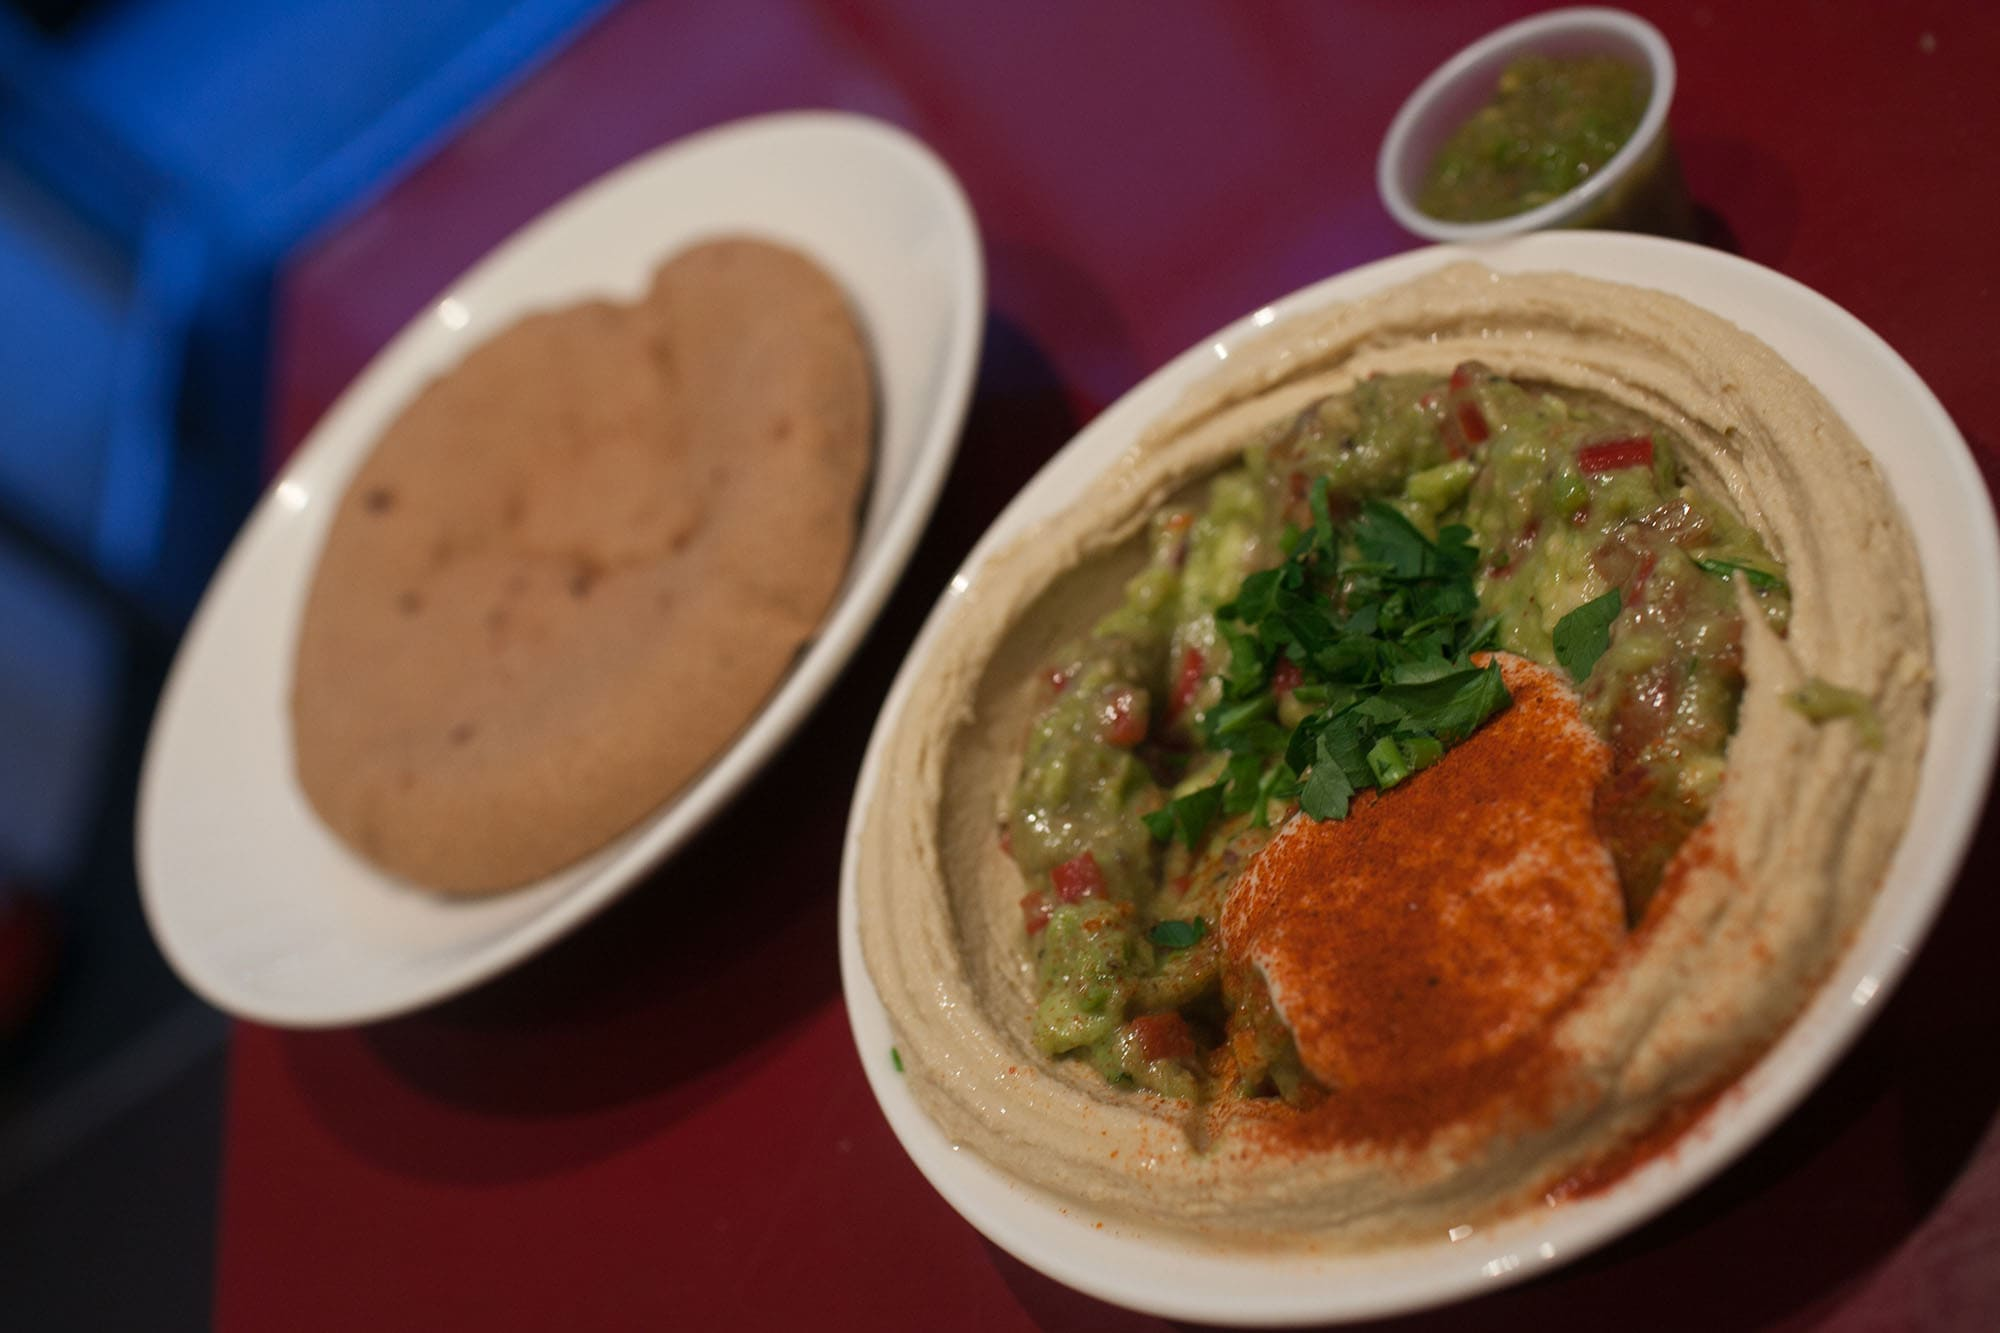 Hummus with guacamole at Hummus Brothers in Soho, London, England